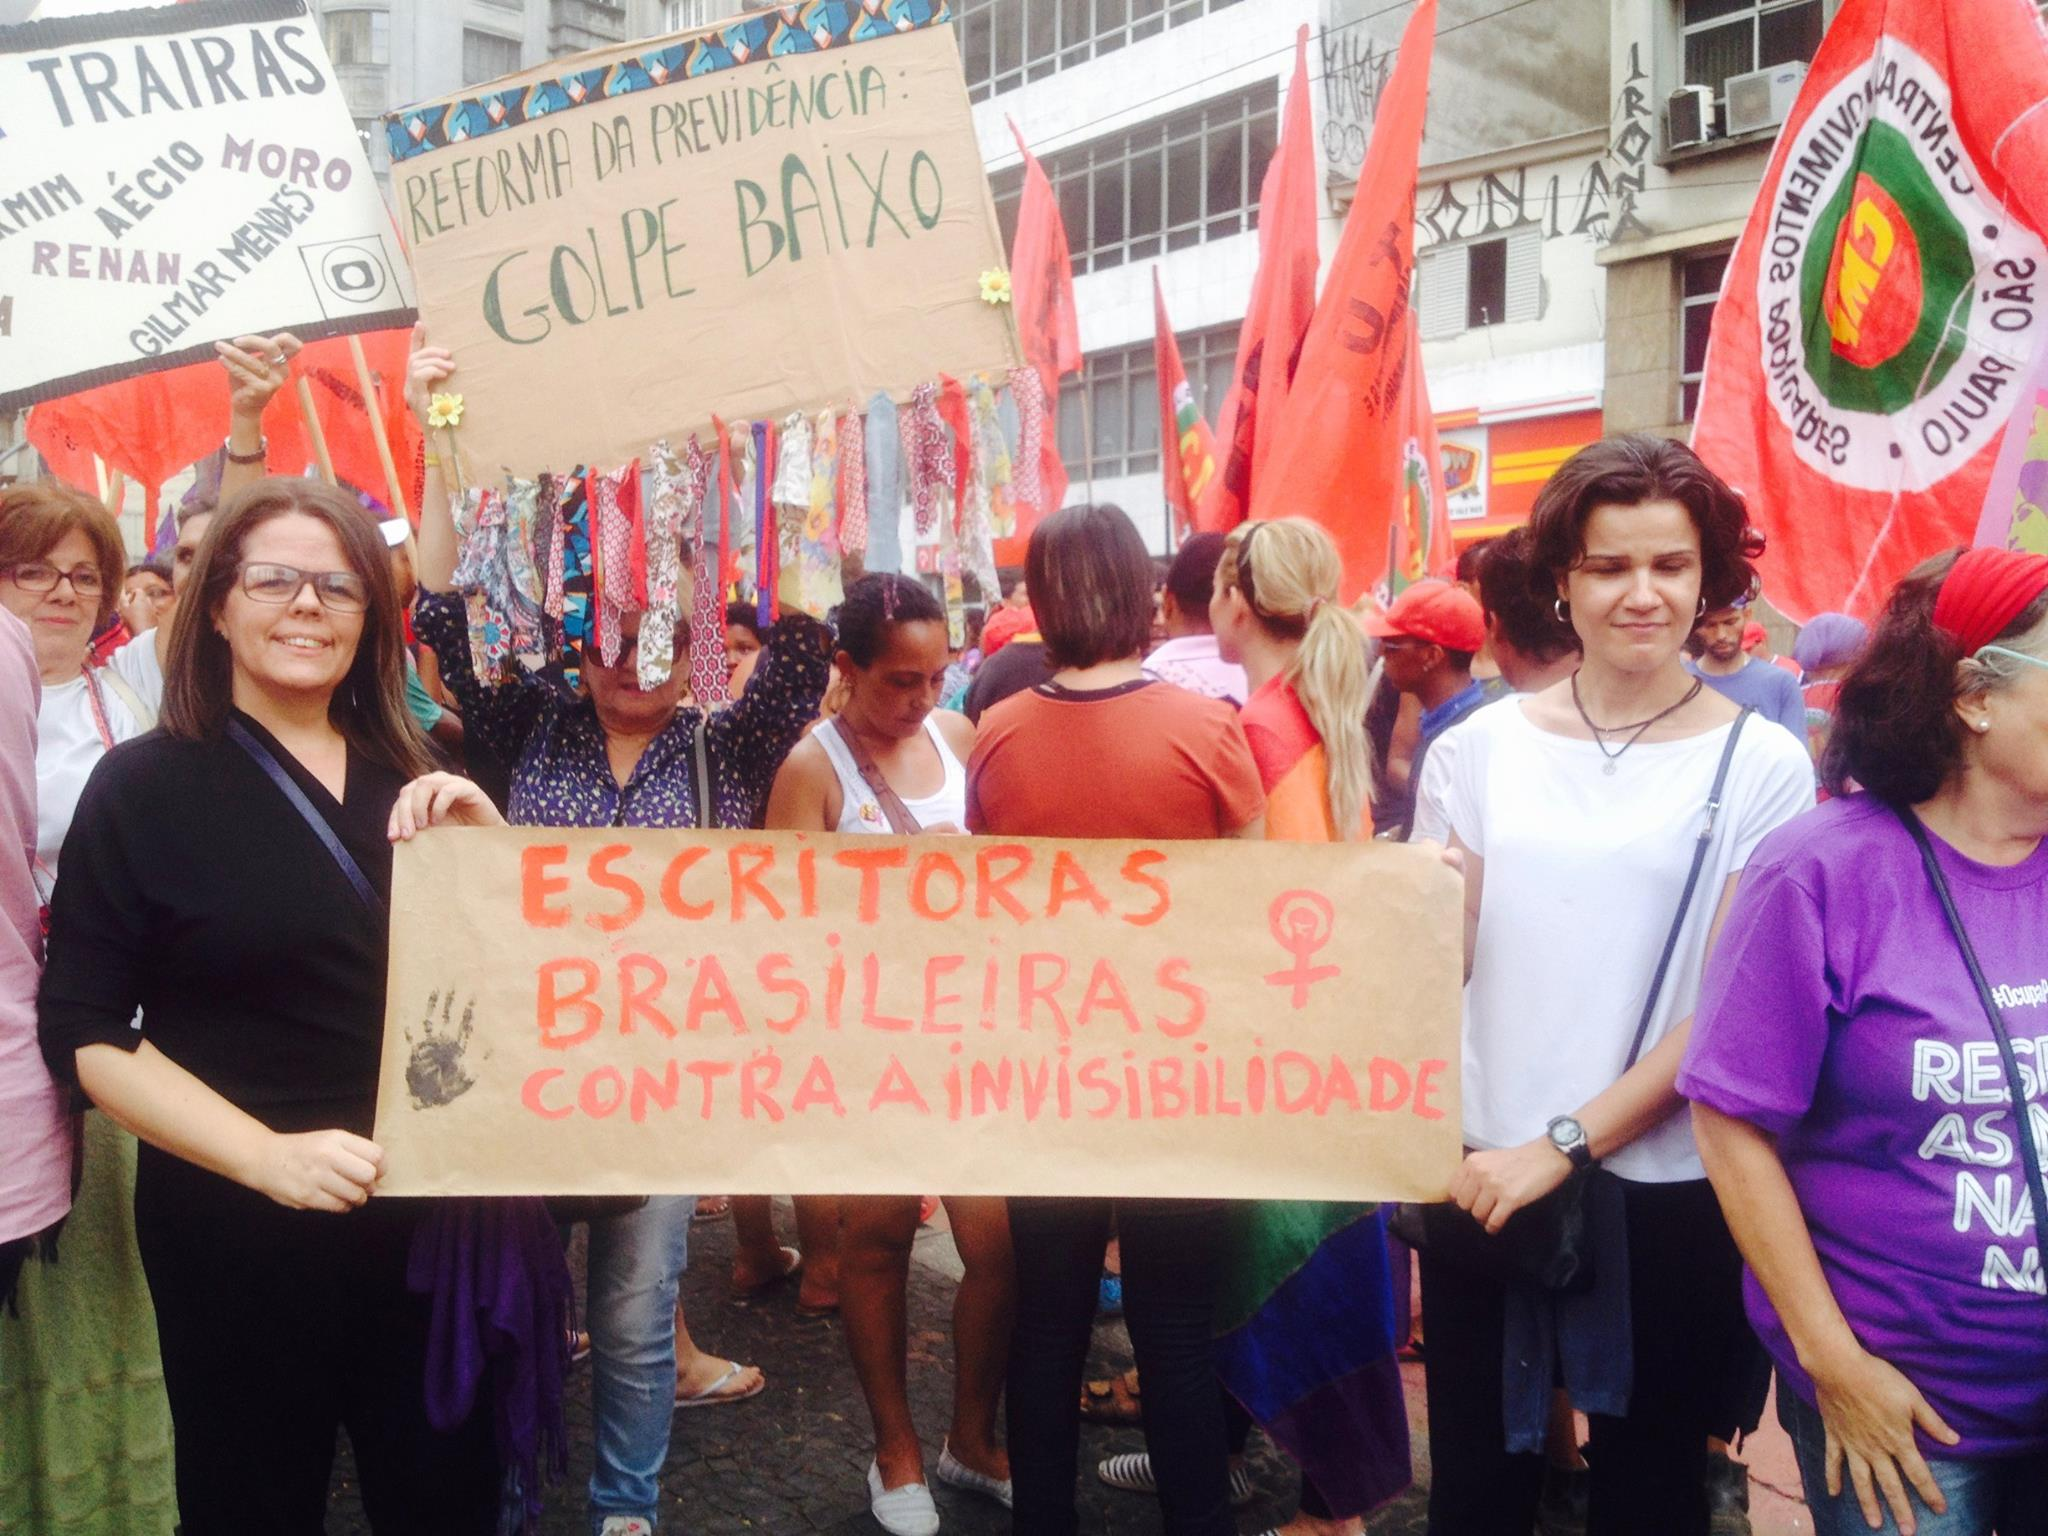 SUPLE marcha em SP by micheliny verunschk